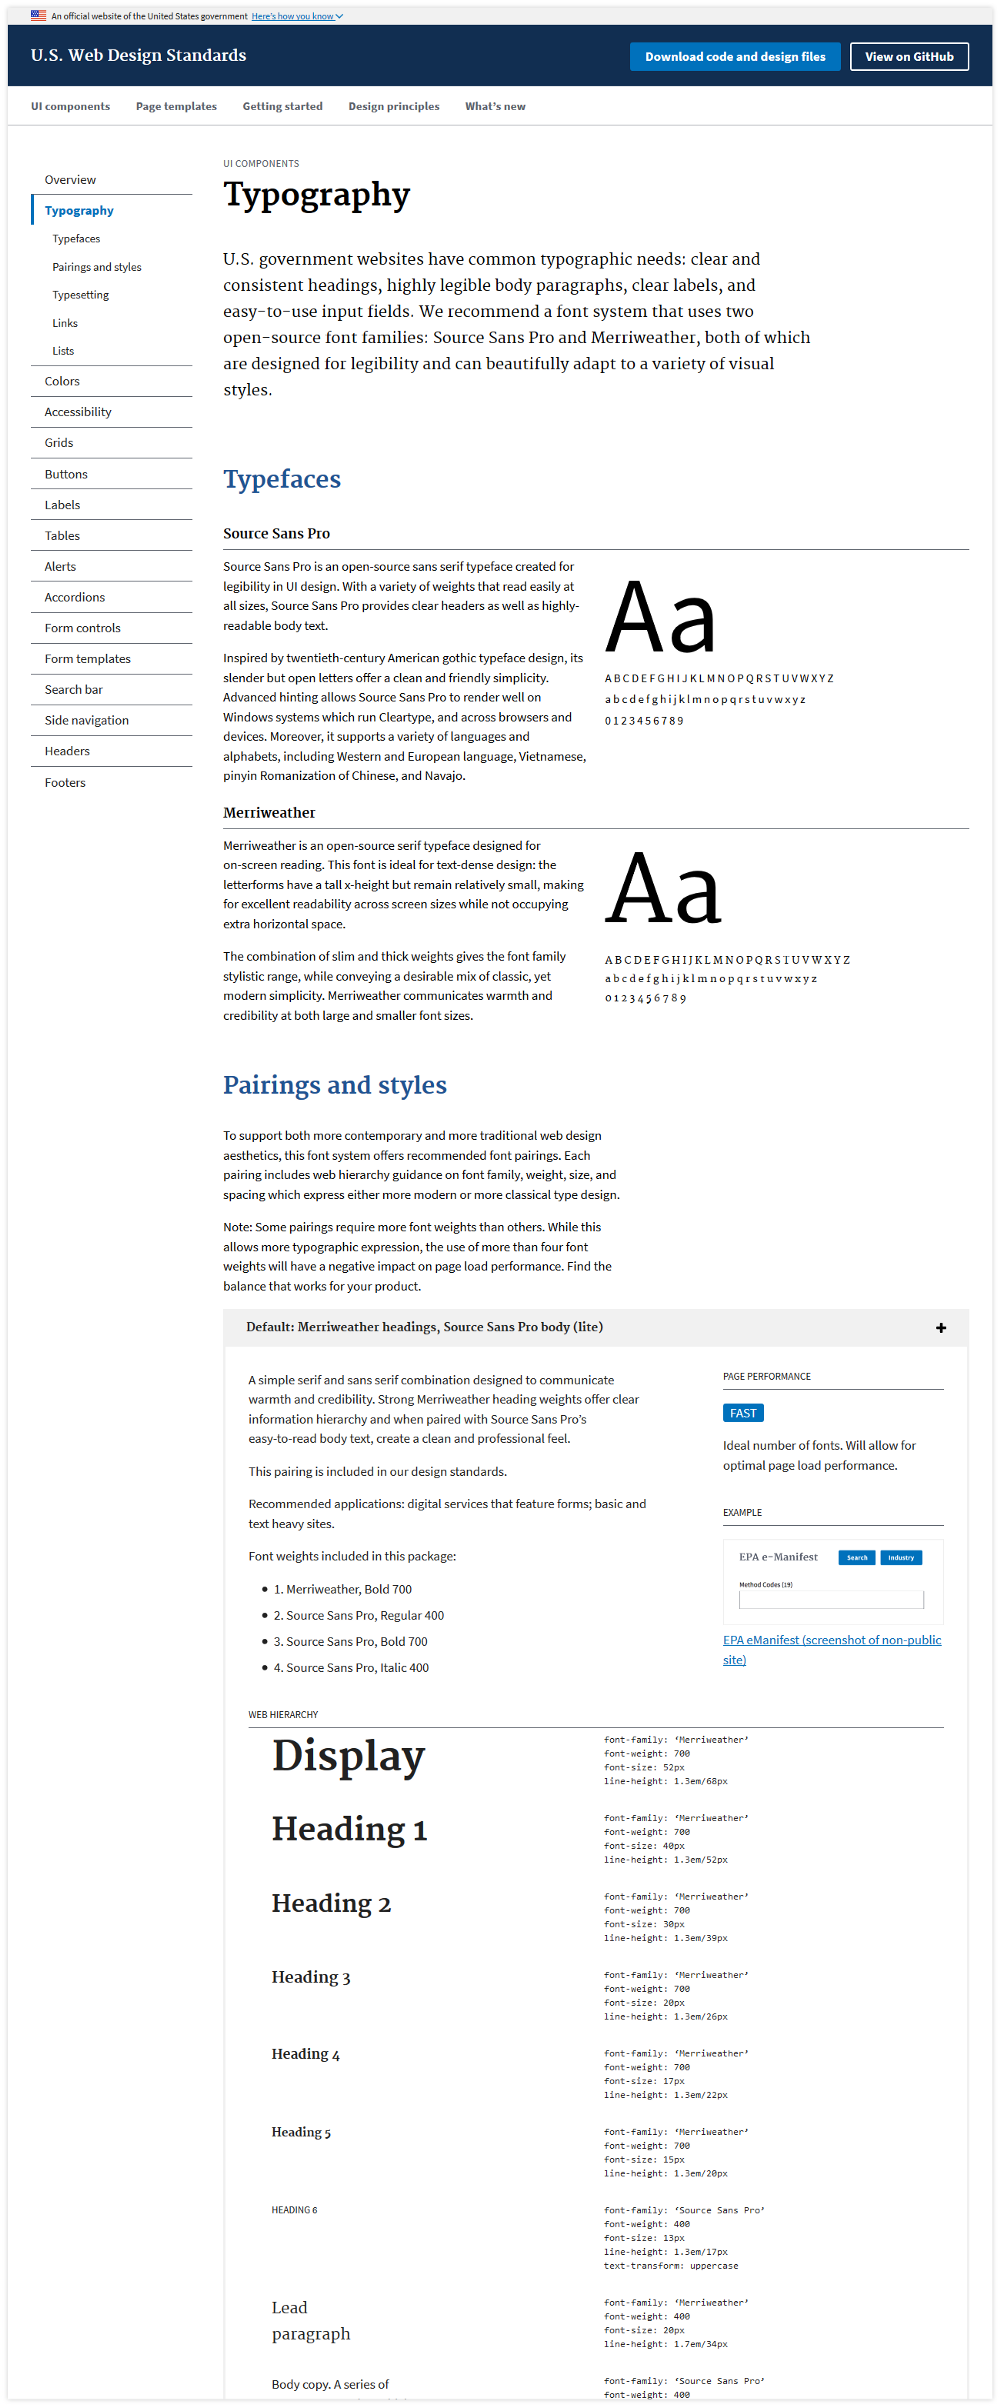 codeblick DigitalerStyleguide Typography Beispiele